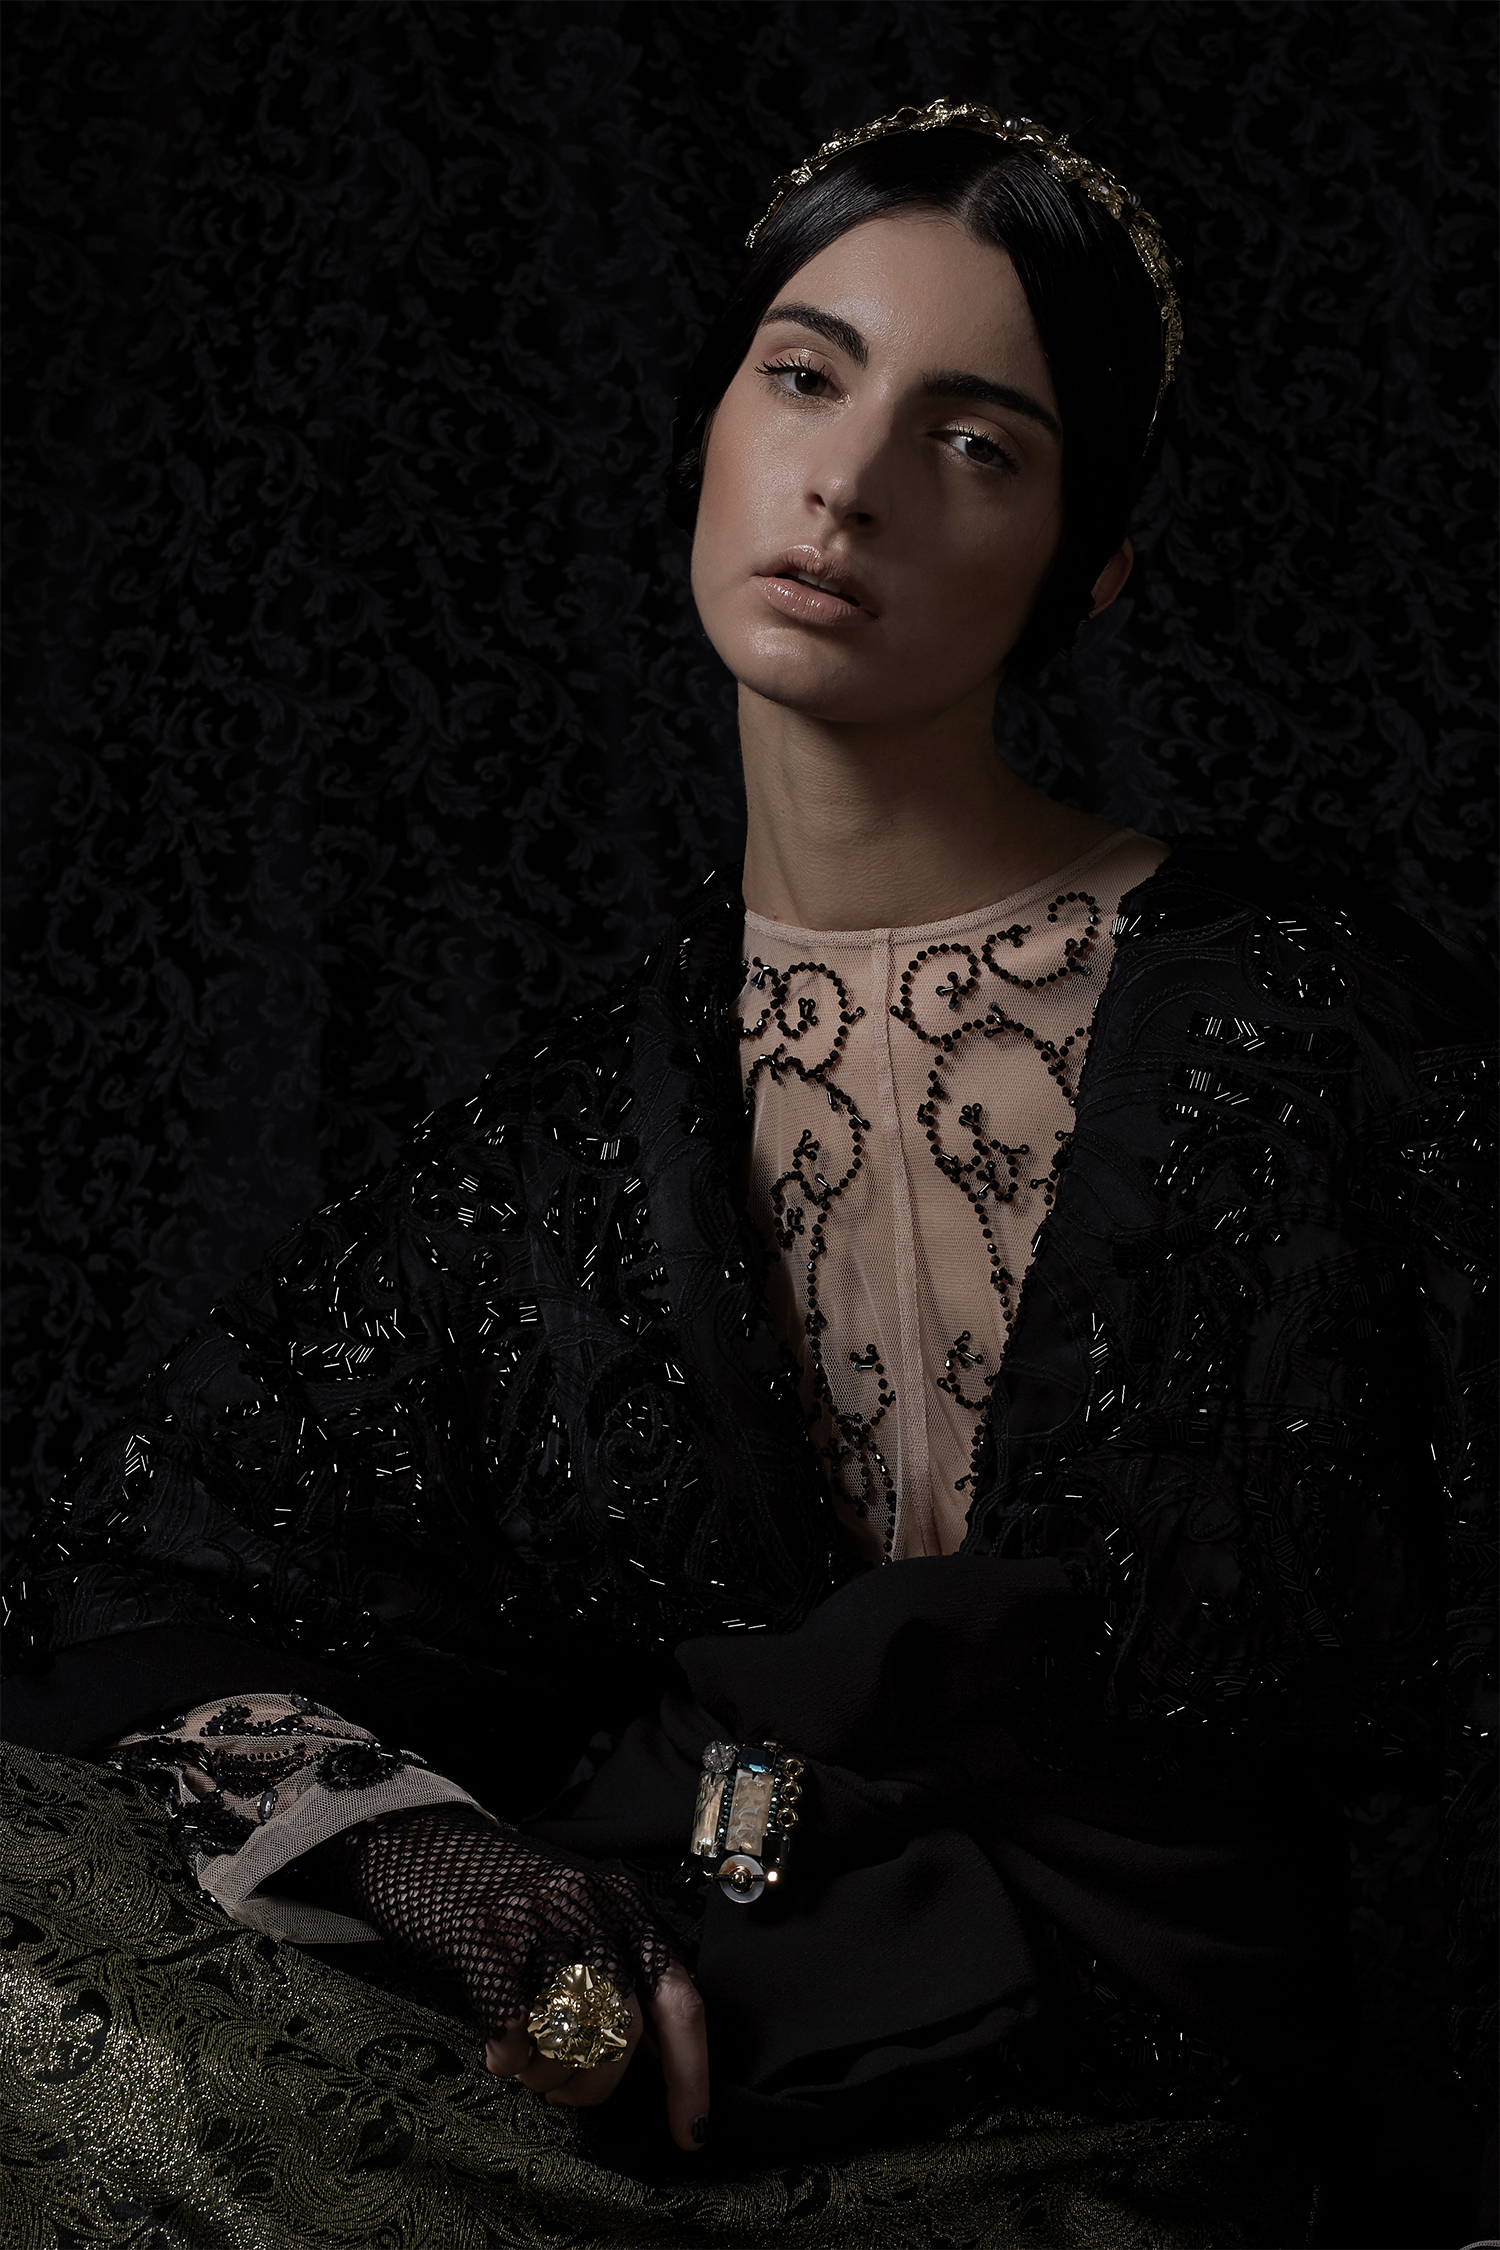 Nude dress with black stone detail, Mori Castello; black kimono jacket with stone embroidery, Mori Castello; gold brocade skirt, LeitMotiv; brooch, Nocturne Studio; ring and headband, Vittorio Ceccoli Jewelry